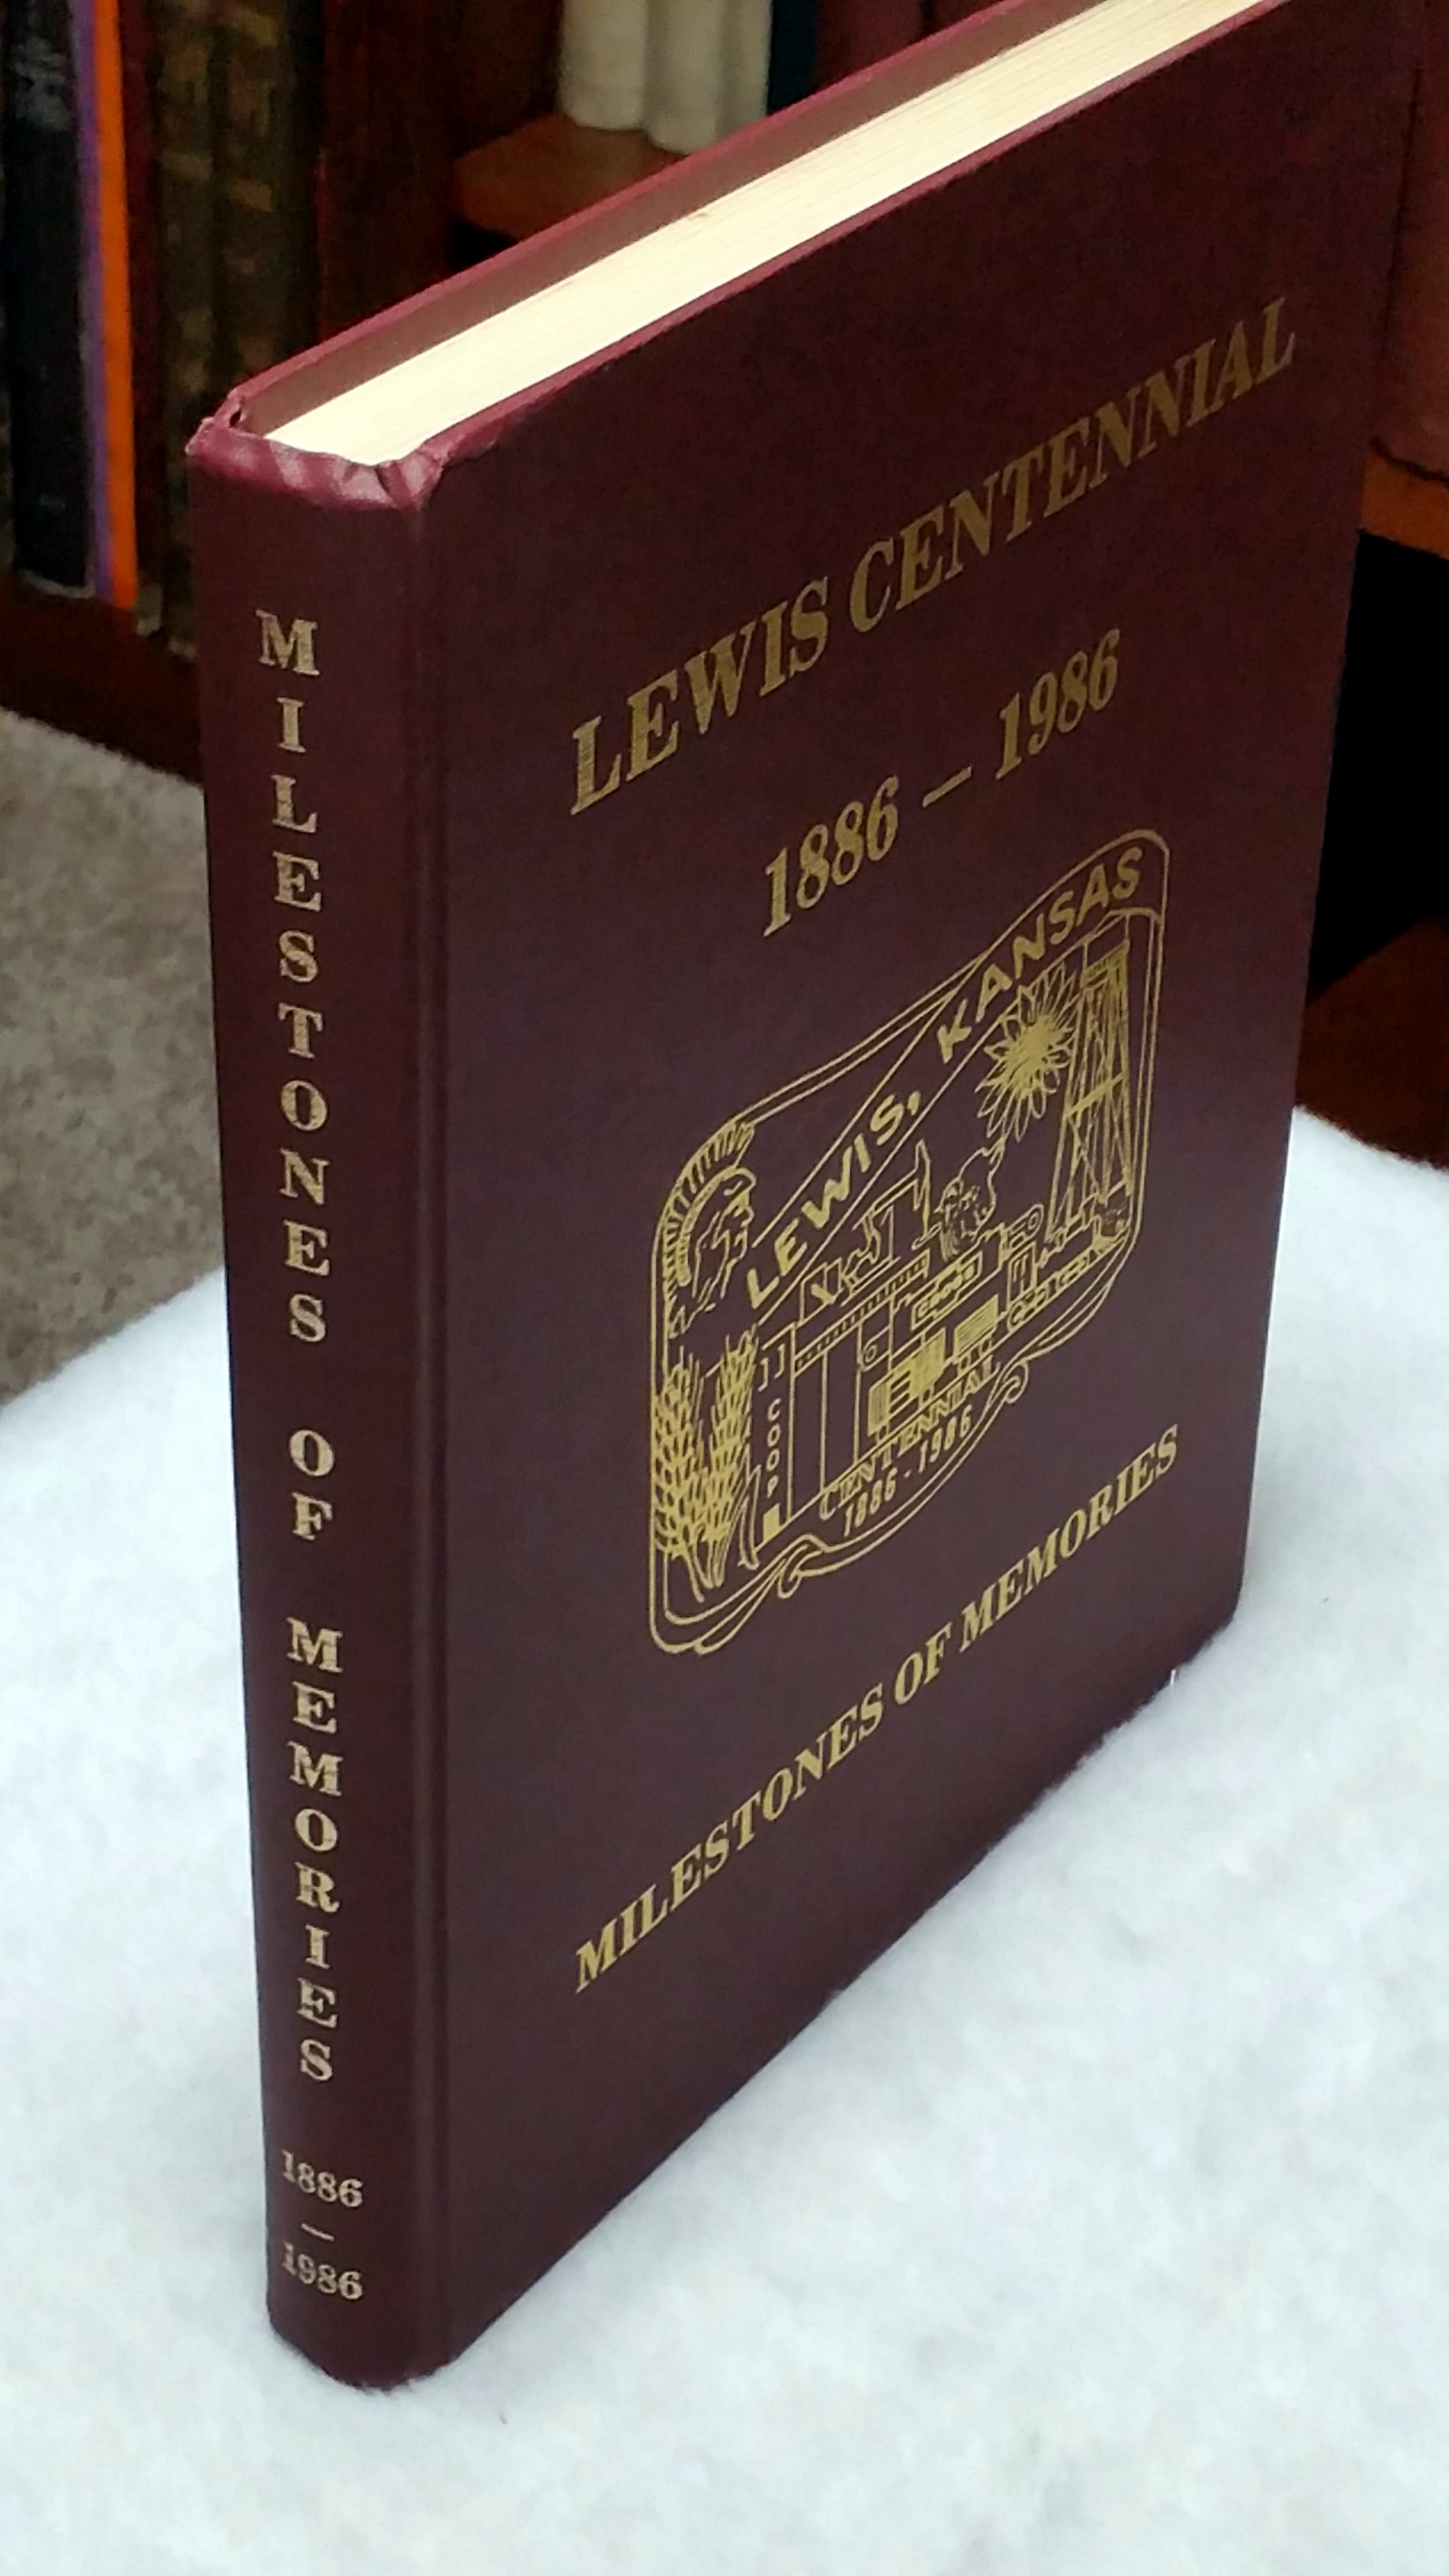 Image for Milestones of Memories: A History of the City of Lewis and the Surrounding Community [Lewis Centennial 1886-1986:  Milestones of Memories]